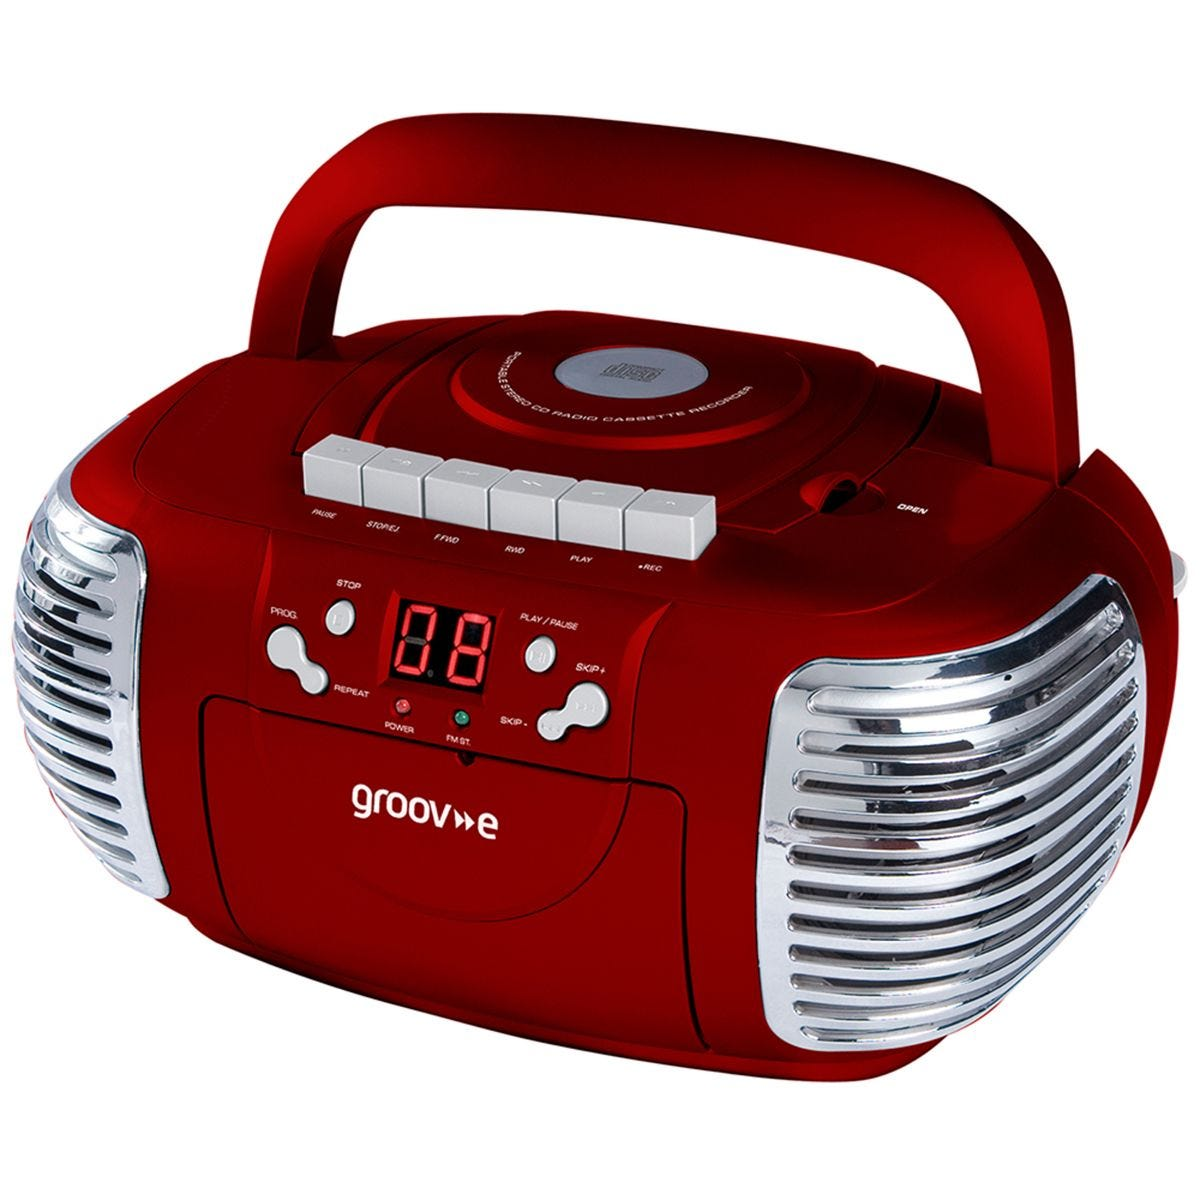 Groov-e Retro Boombox Portable CD & Cassette Player with Radio - Red